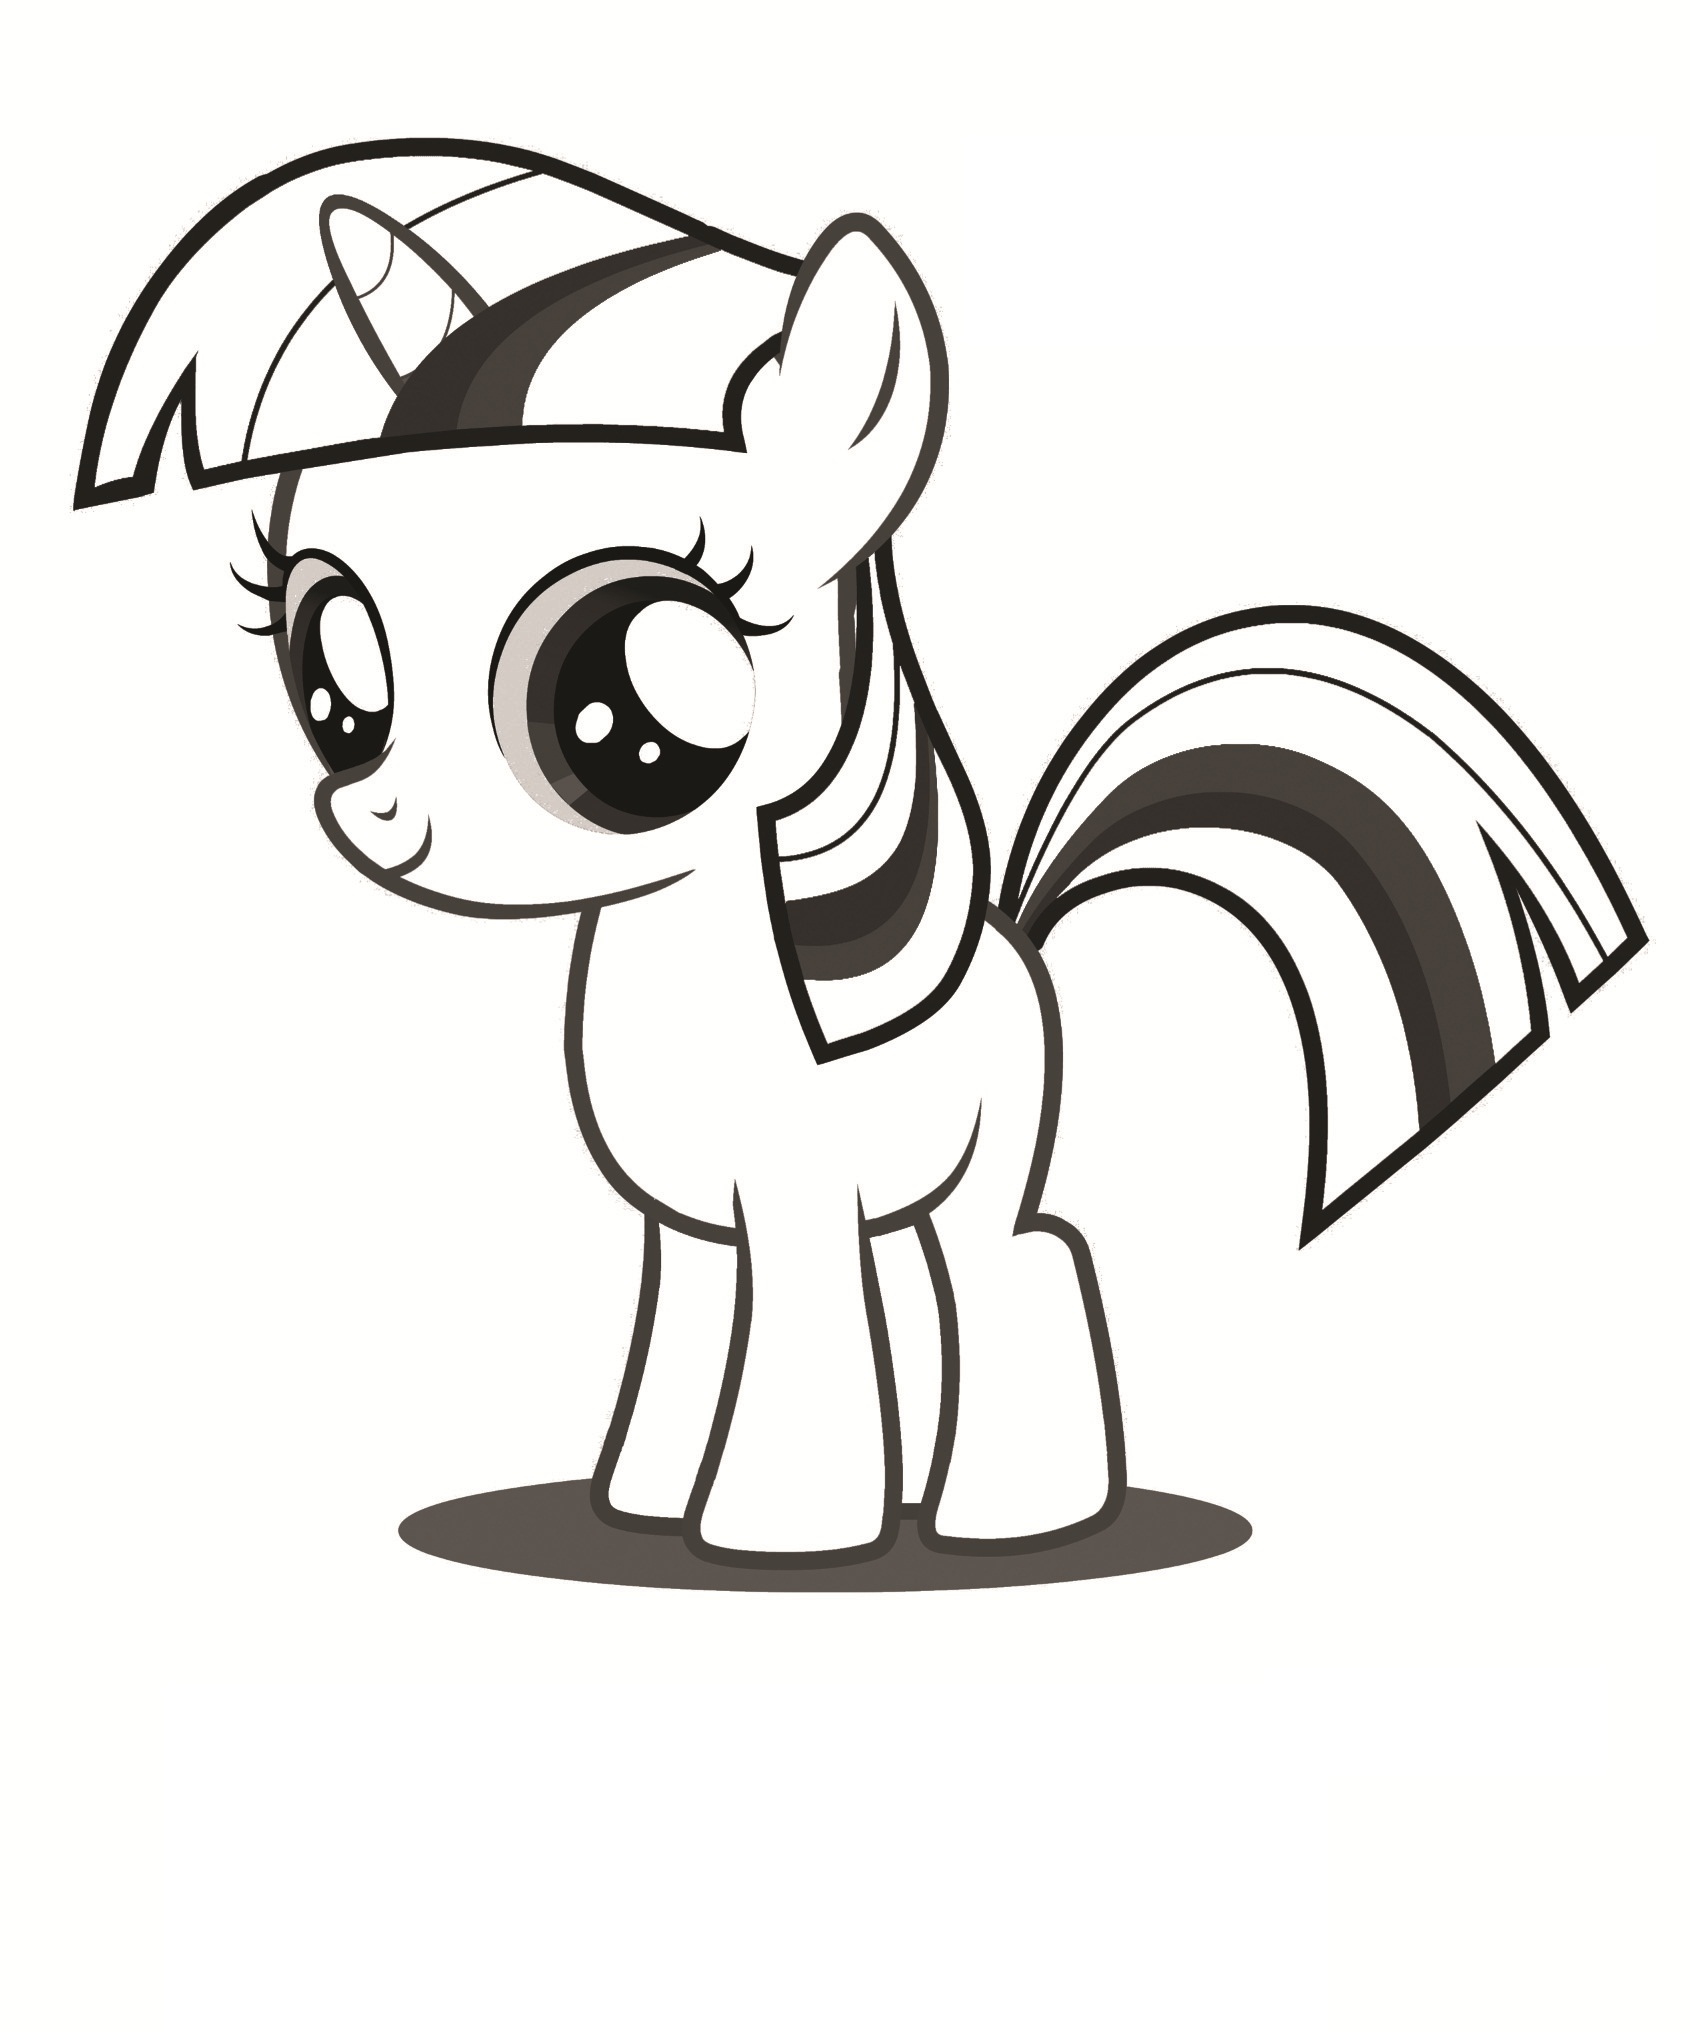 Adult Cute My Pretty Pony Coloring Pages Gallery Images cute free printable my little pony coloring pages for kids gallery images